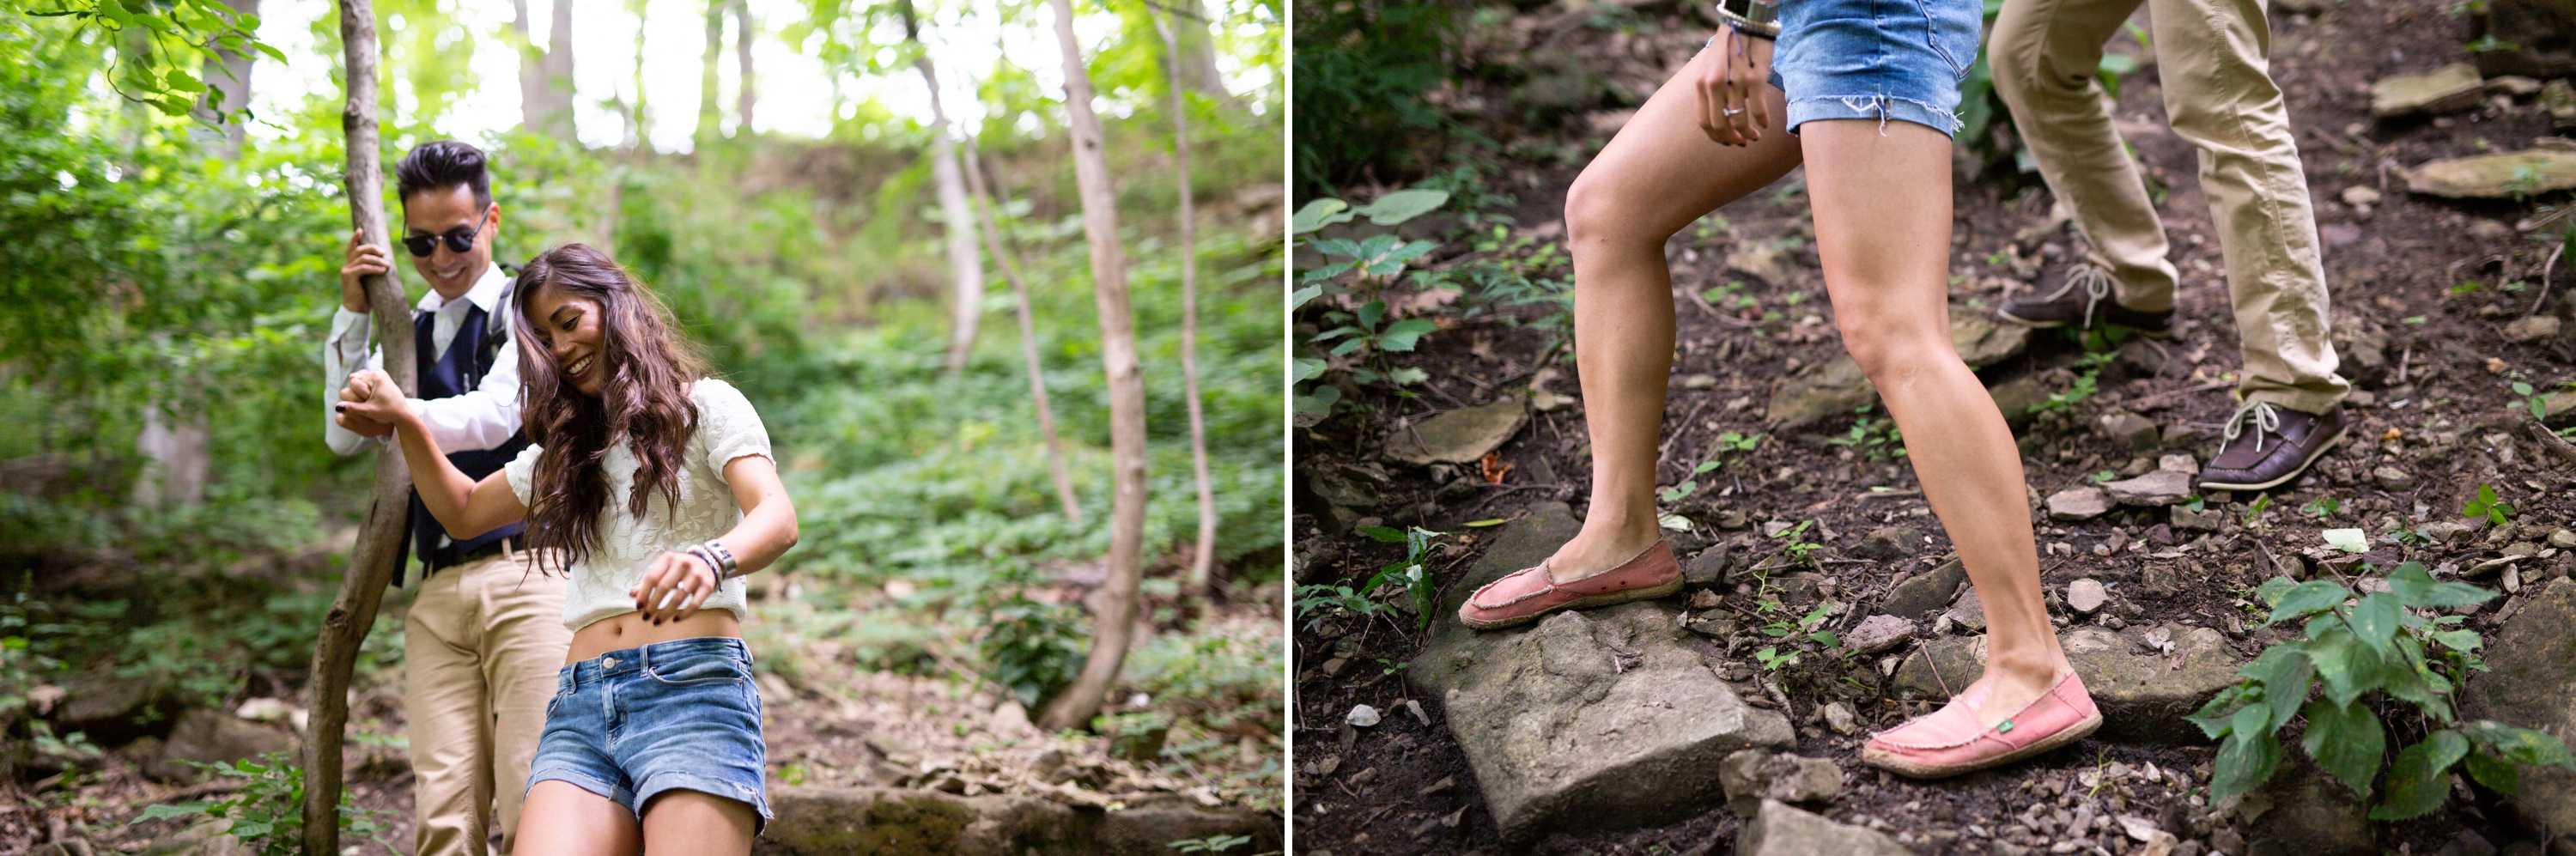 Hike Engagement Session Albion Falls Waterfall Hamilton Zsuzsi Pal Photography